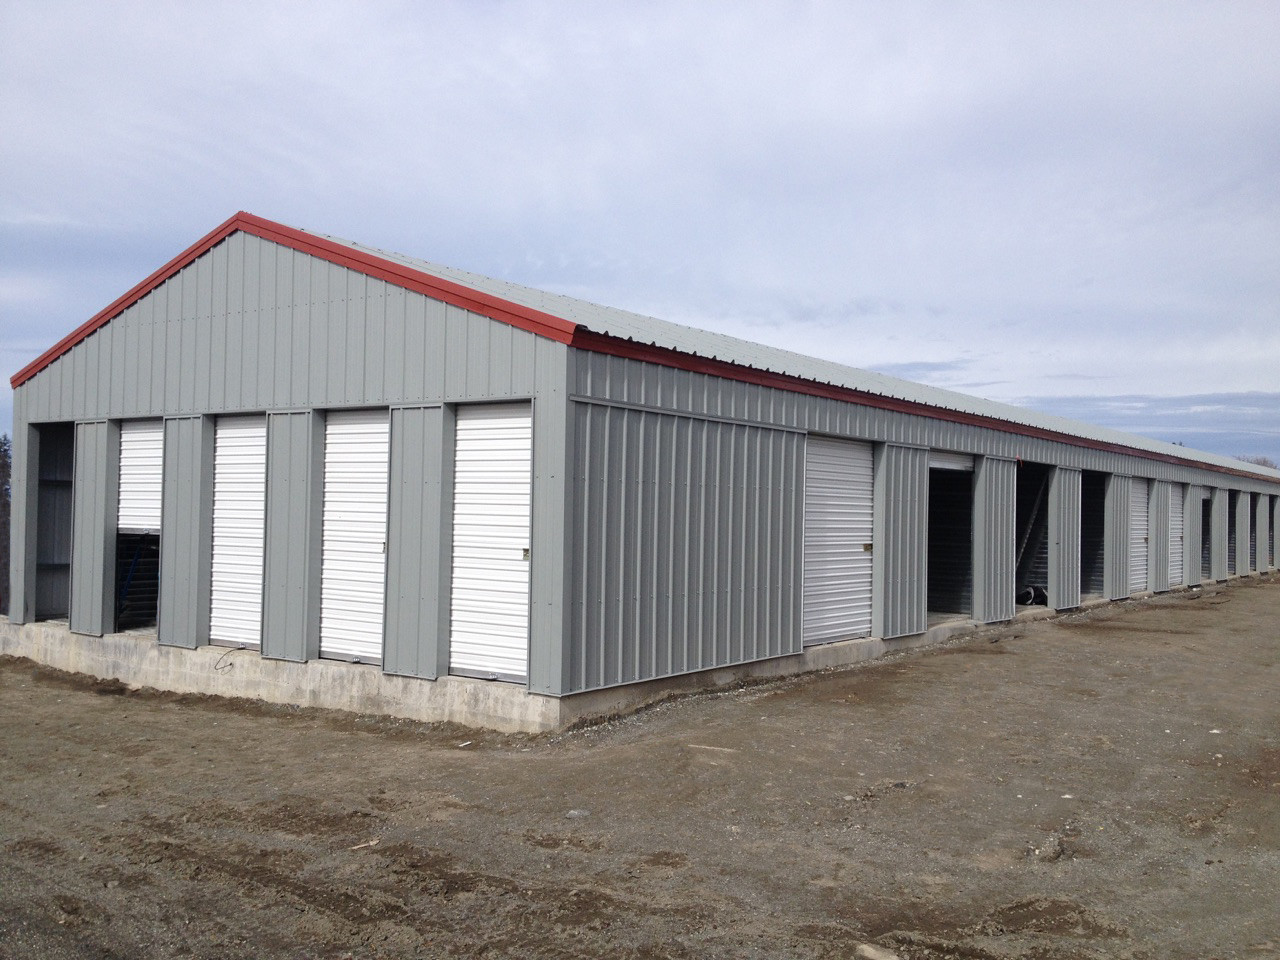 Hci Steel Buildings Specializes In Custom Built Metal Storage Sheds Provide A Great Outdoor Units For What Ever Your Needs